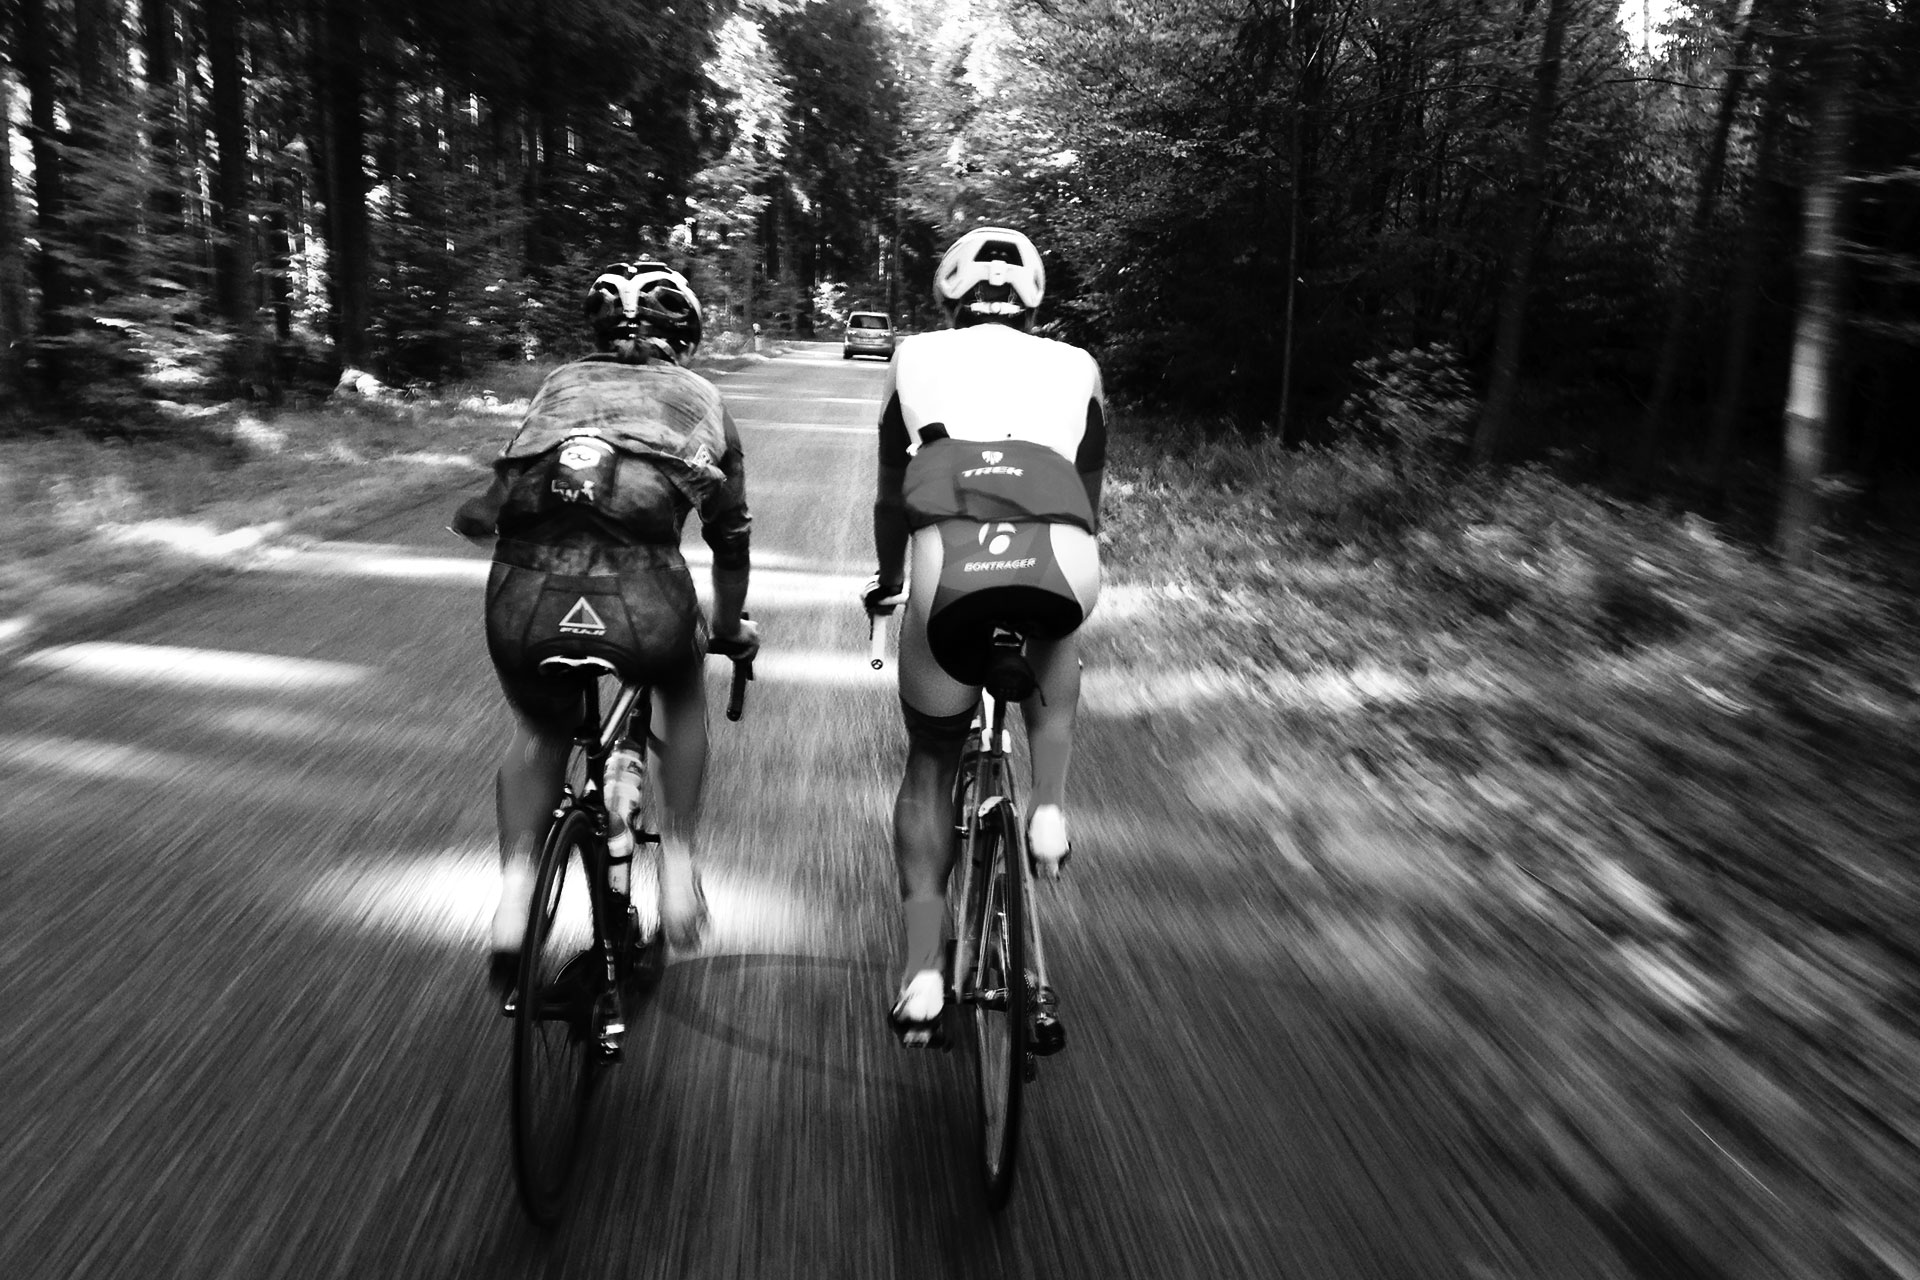 SUGAR & PAIN ENDLESS SEASON RIDE 17 Indian Summer, Rennrad und viel Espresso / Im Windschatten der jungen Wilden, Markus und Maxi rollt's locker s/w © Stefan Drexl